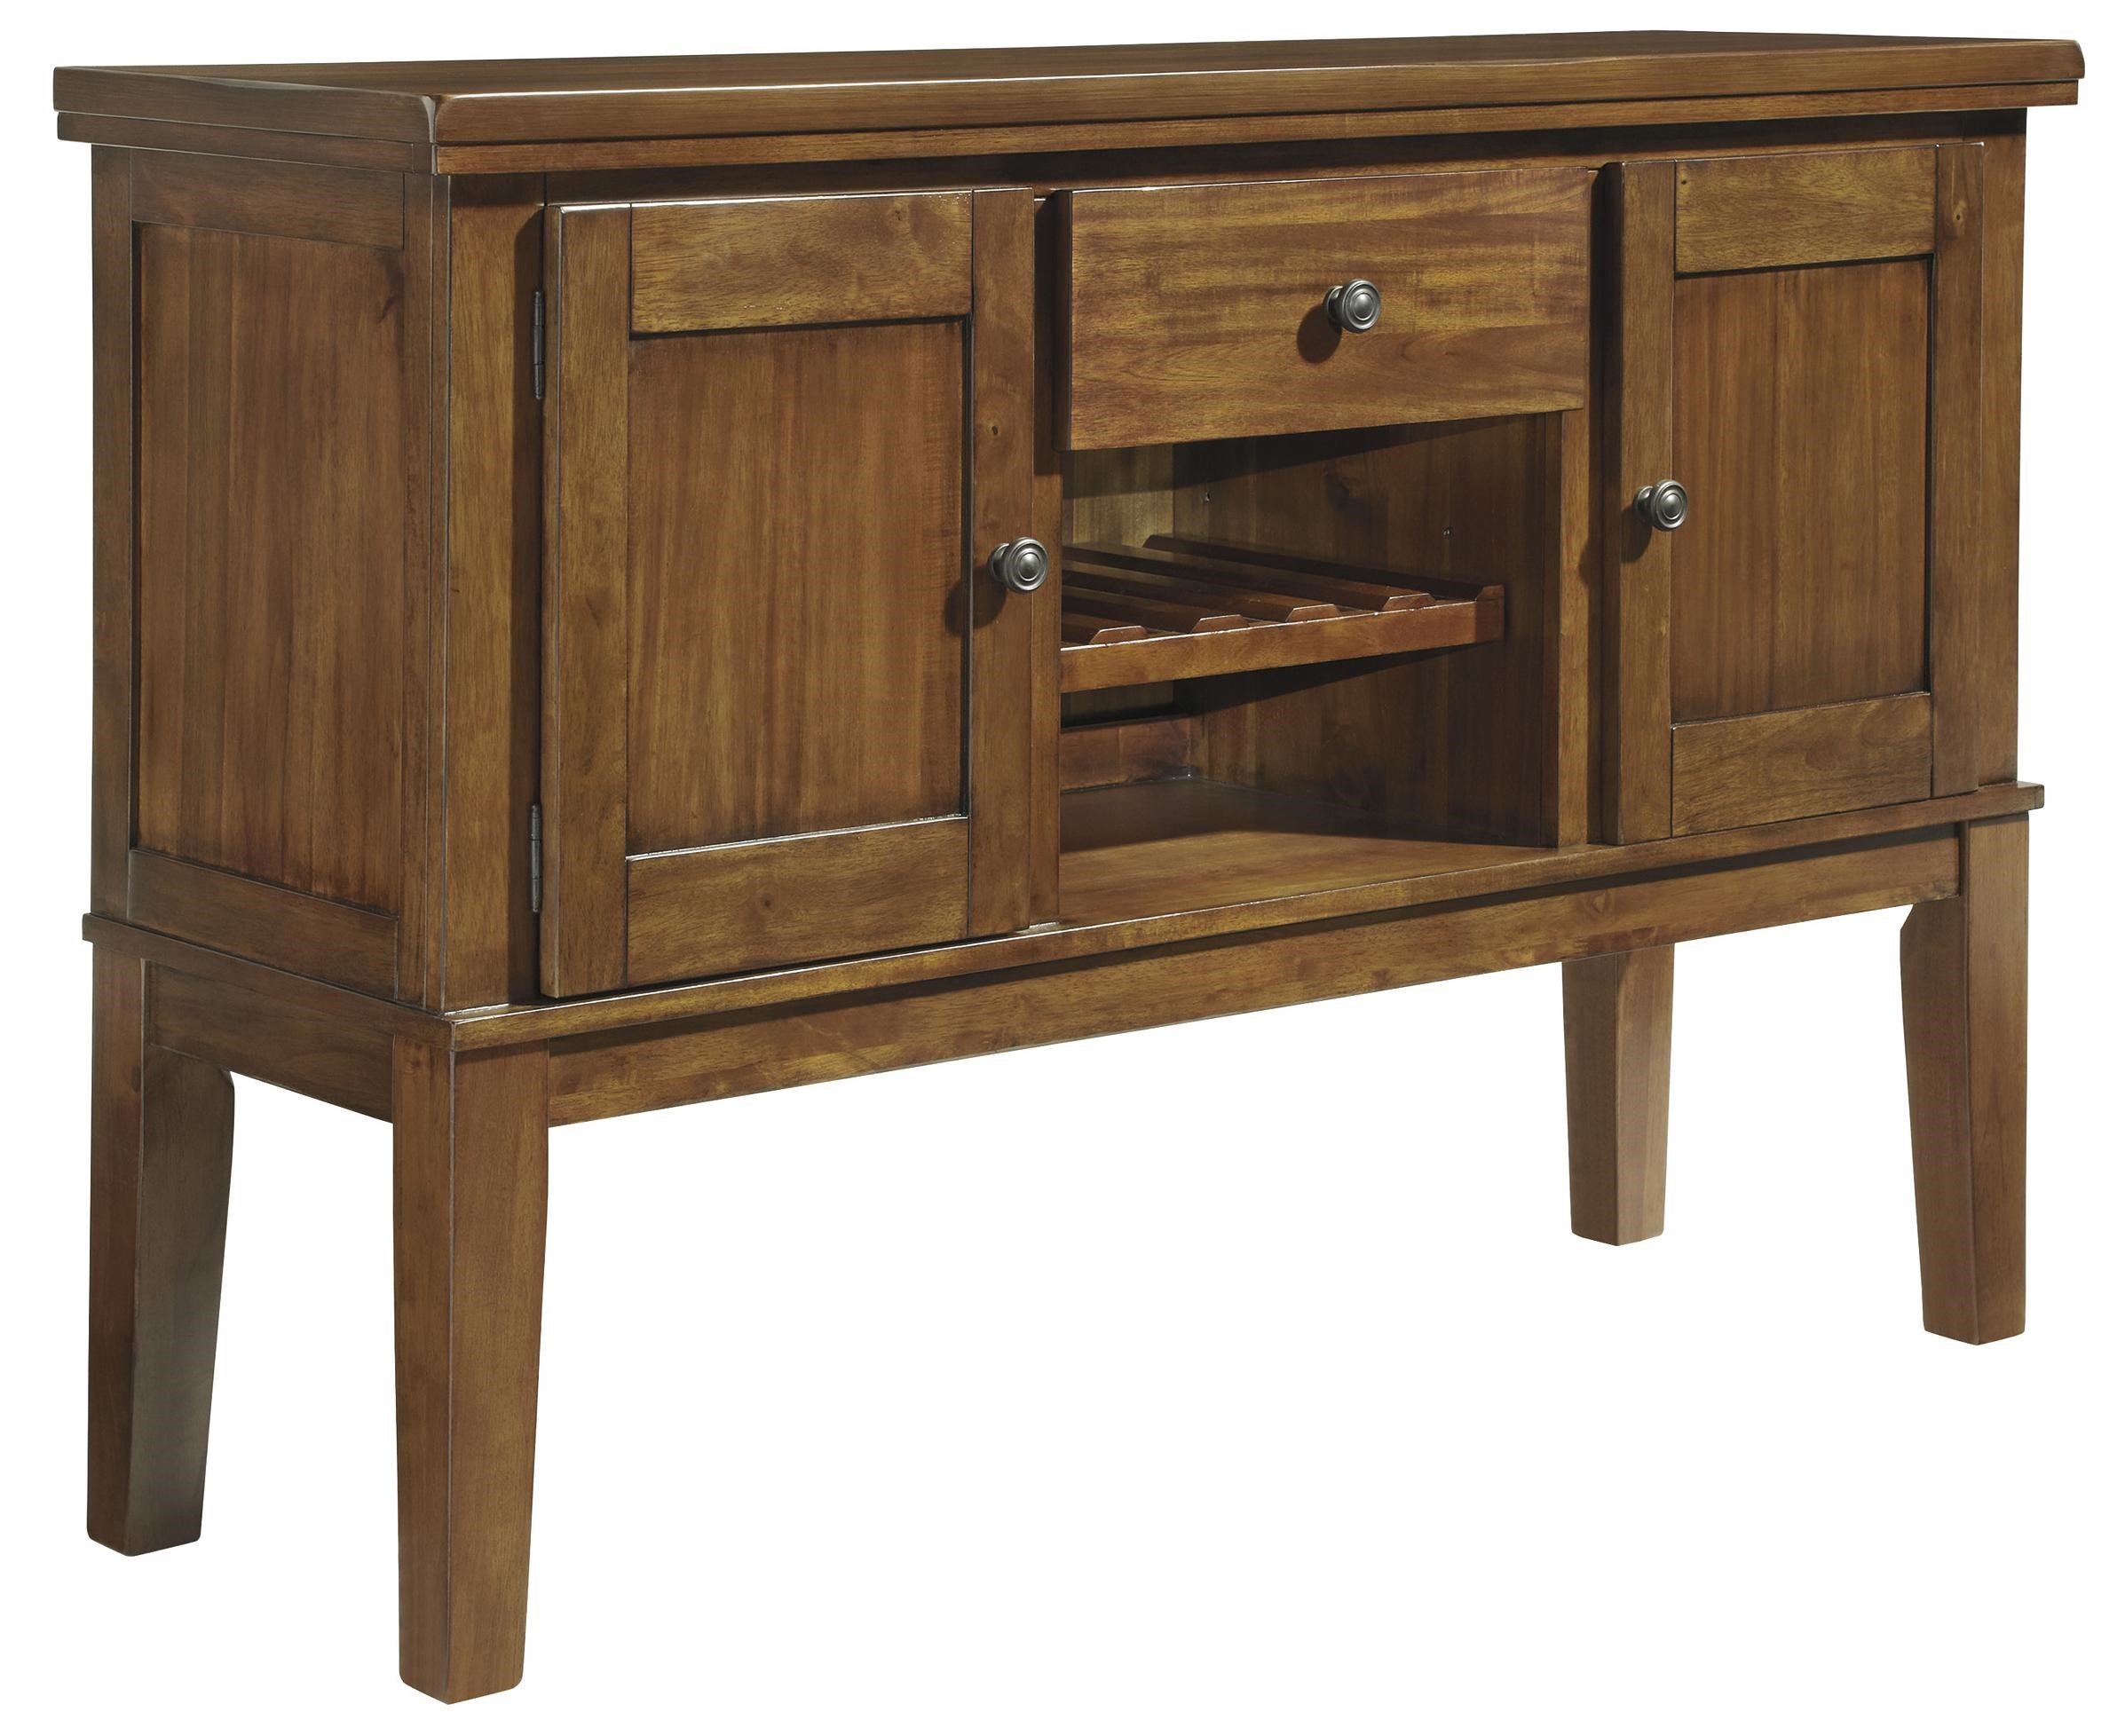 Casual Dining Room Server With Wine Rack